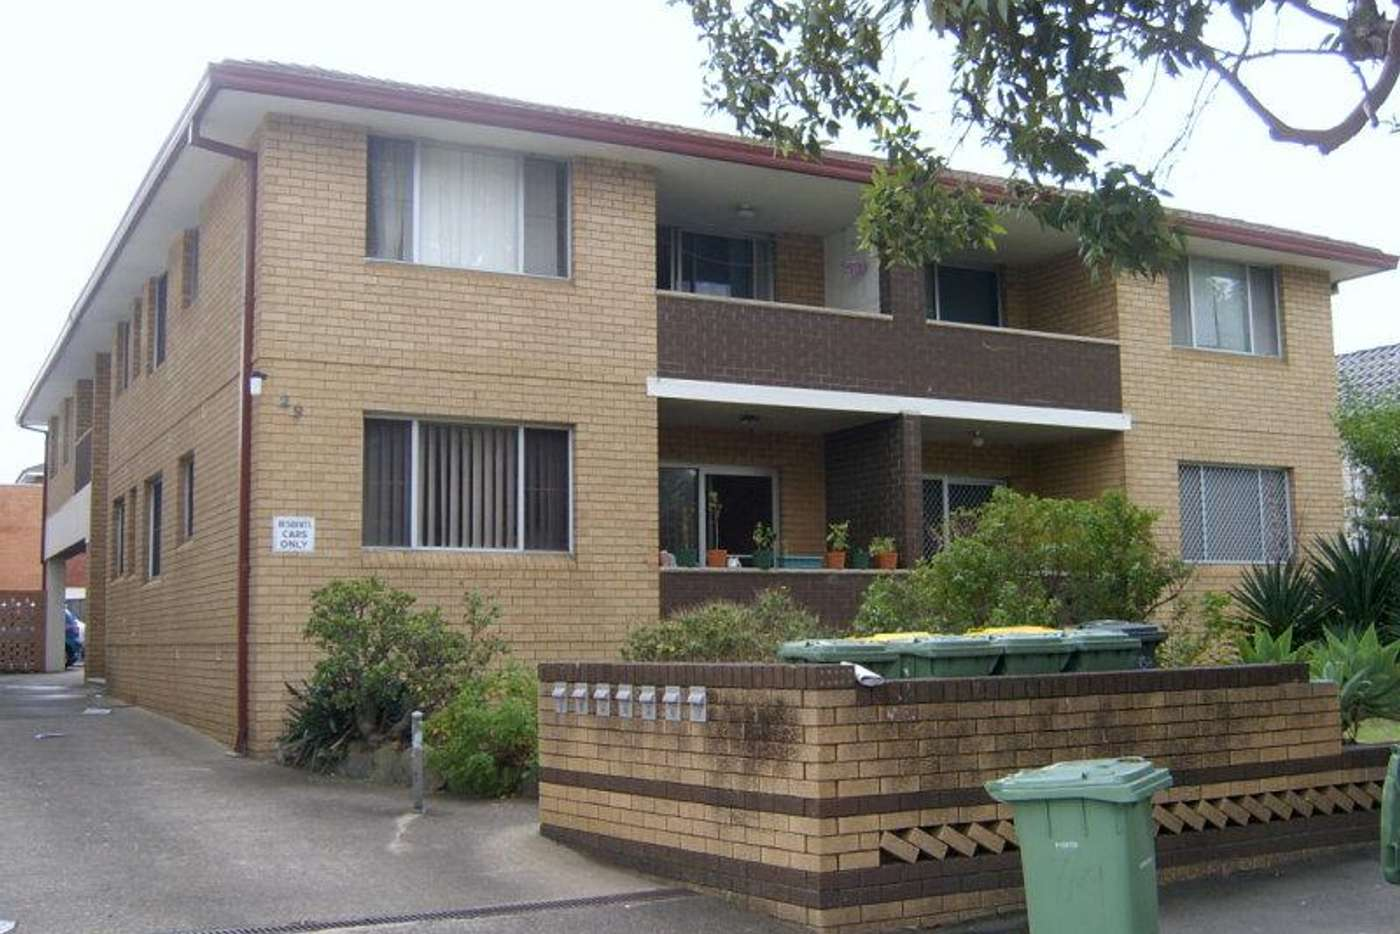 Main view of Homely unit listing, 29 Sorrell Street, Parramatta NSW 2150